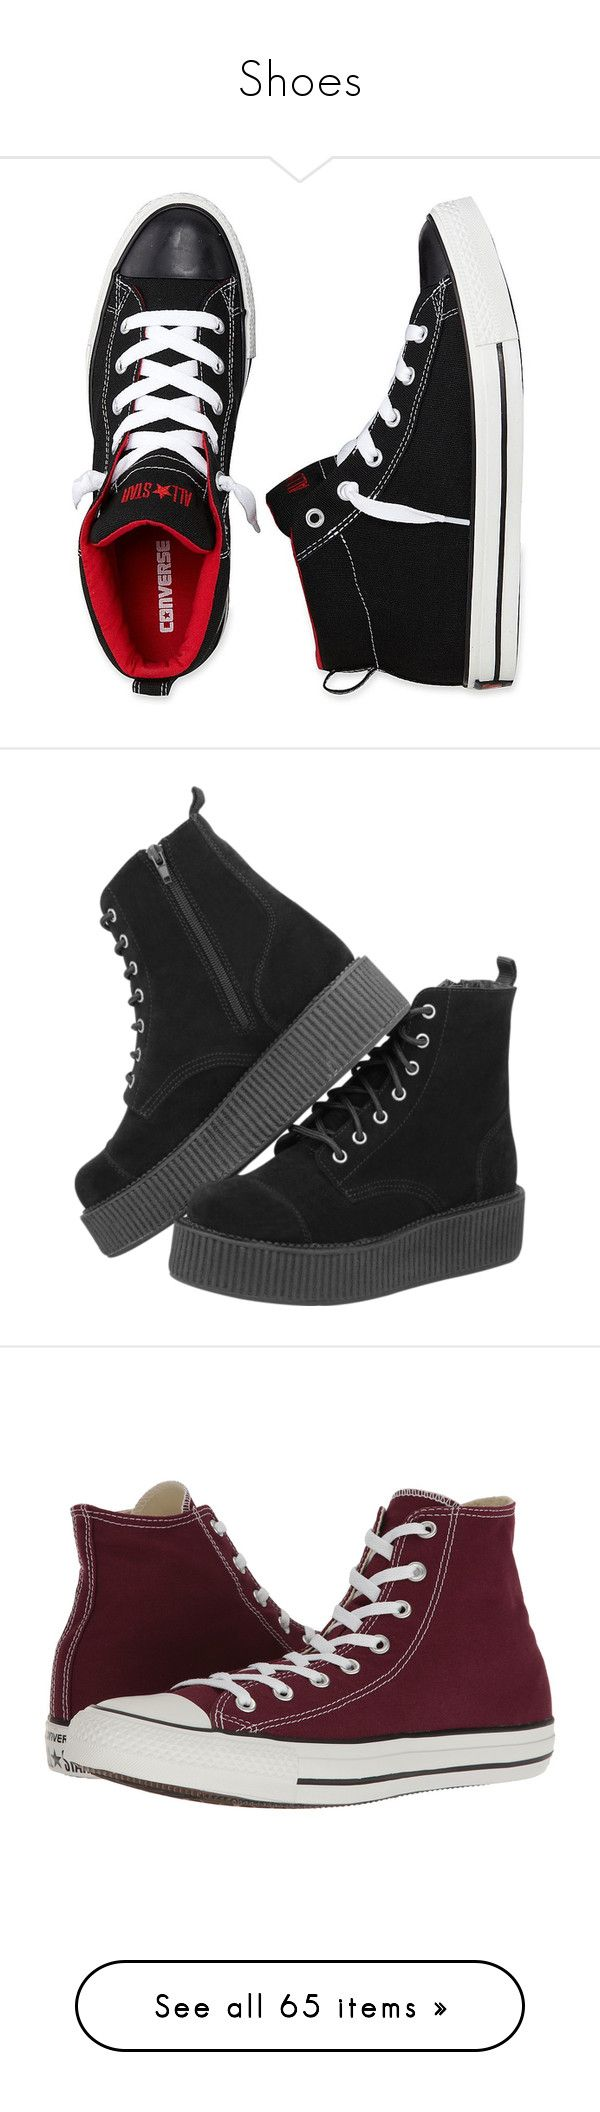 """Shoes"" by slytherin-for-life ❤ liked on Polyvore featuring shoes, sneakers, converse, men, converse footwear, converse trainers, converse shoes, unisex sneakers, star shoes and boots"